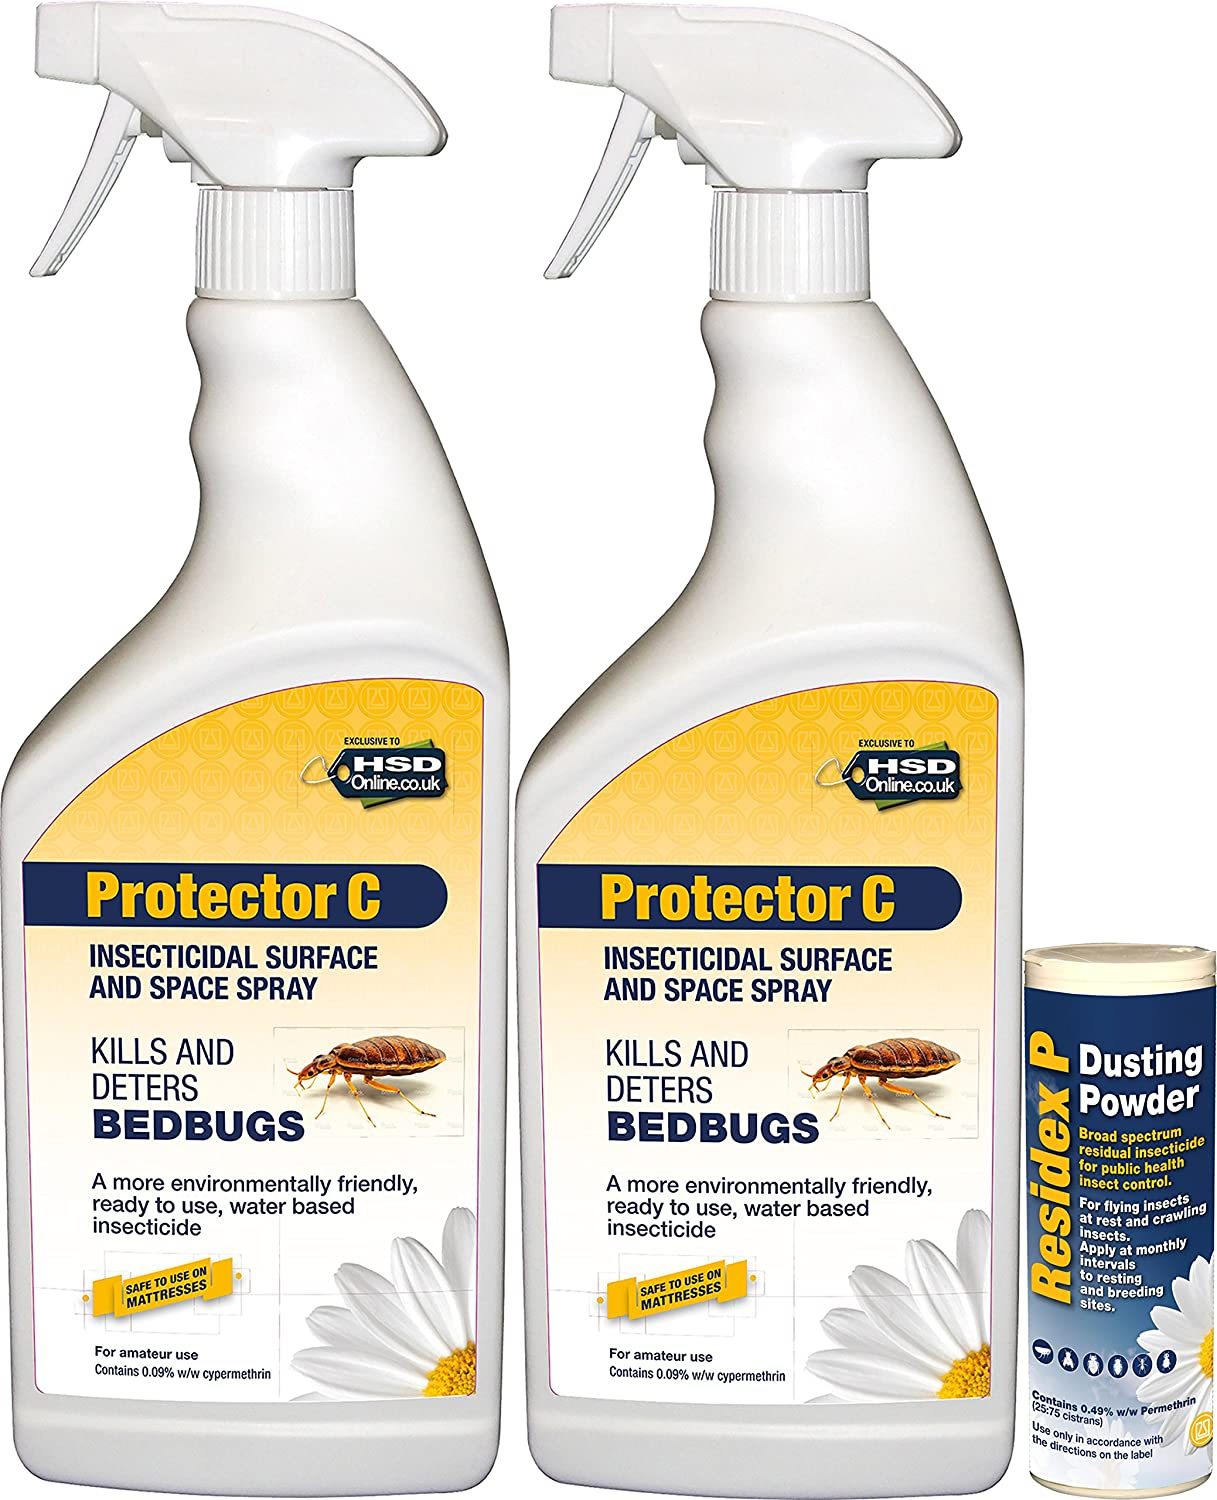 2 x 1 Litres Bed Bug Killer Treatment Spray and Powder Kit Agropharm